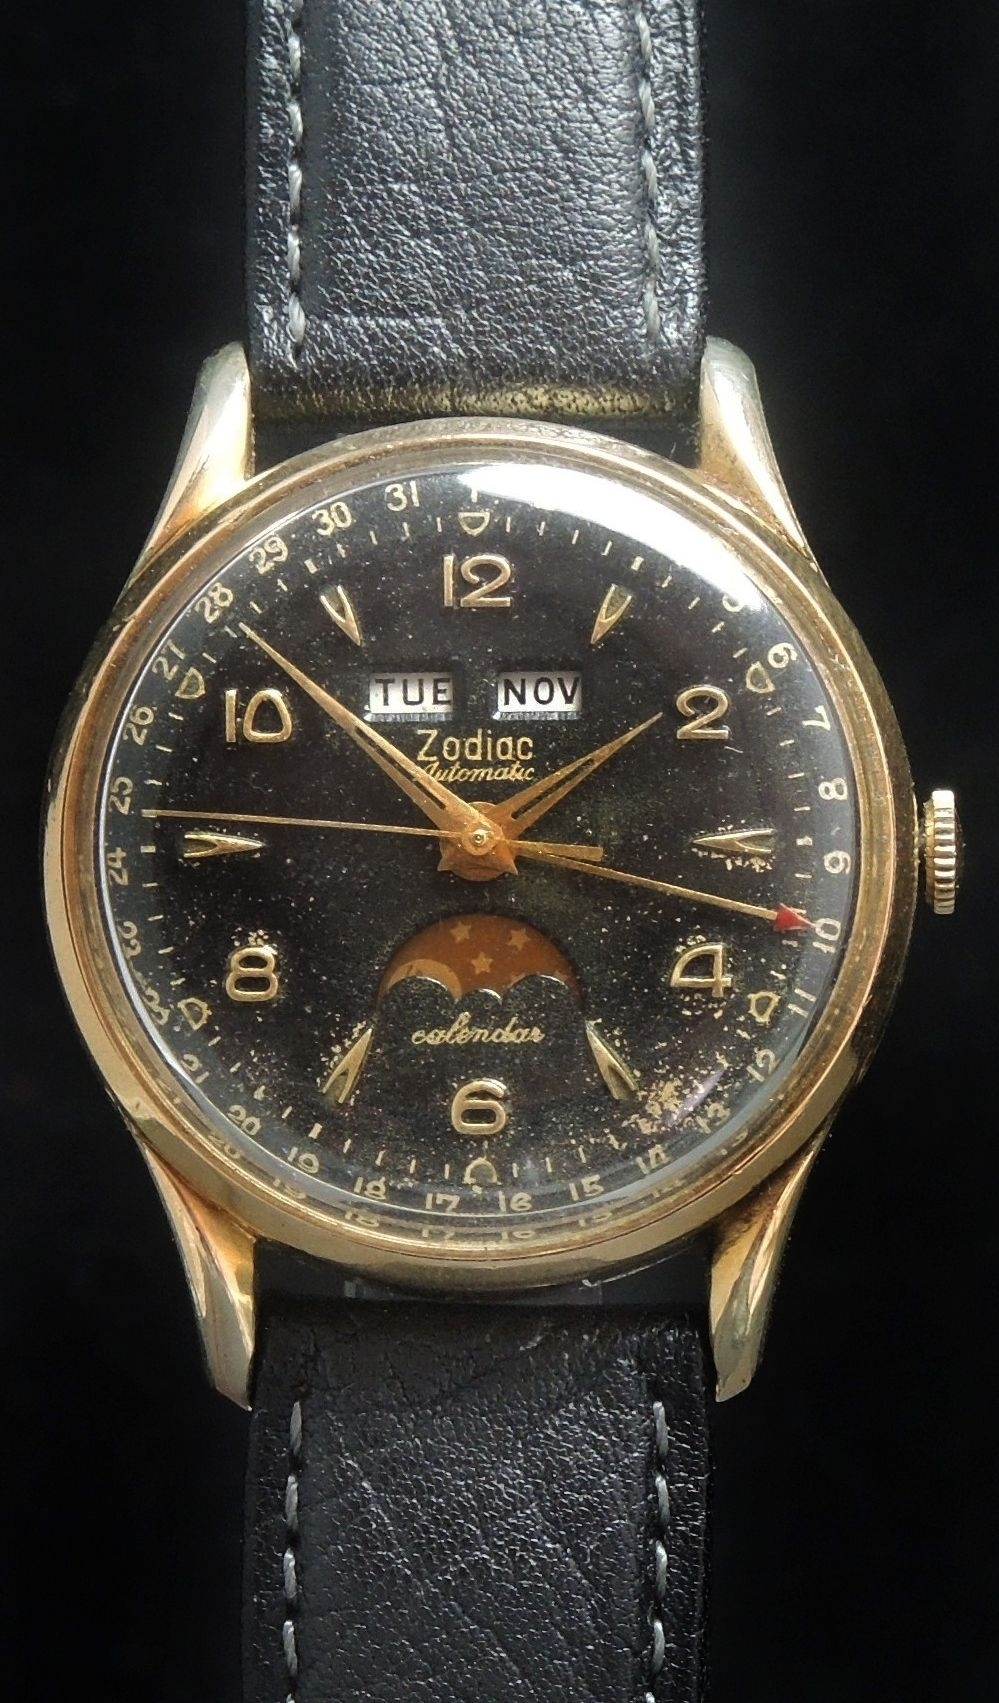 Zodiac Triple Date Datora Calendar Moonphase Automatic In